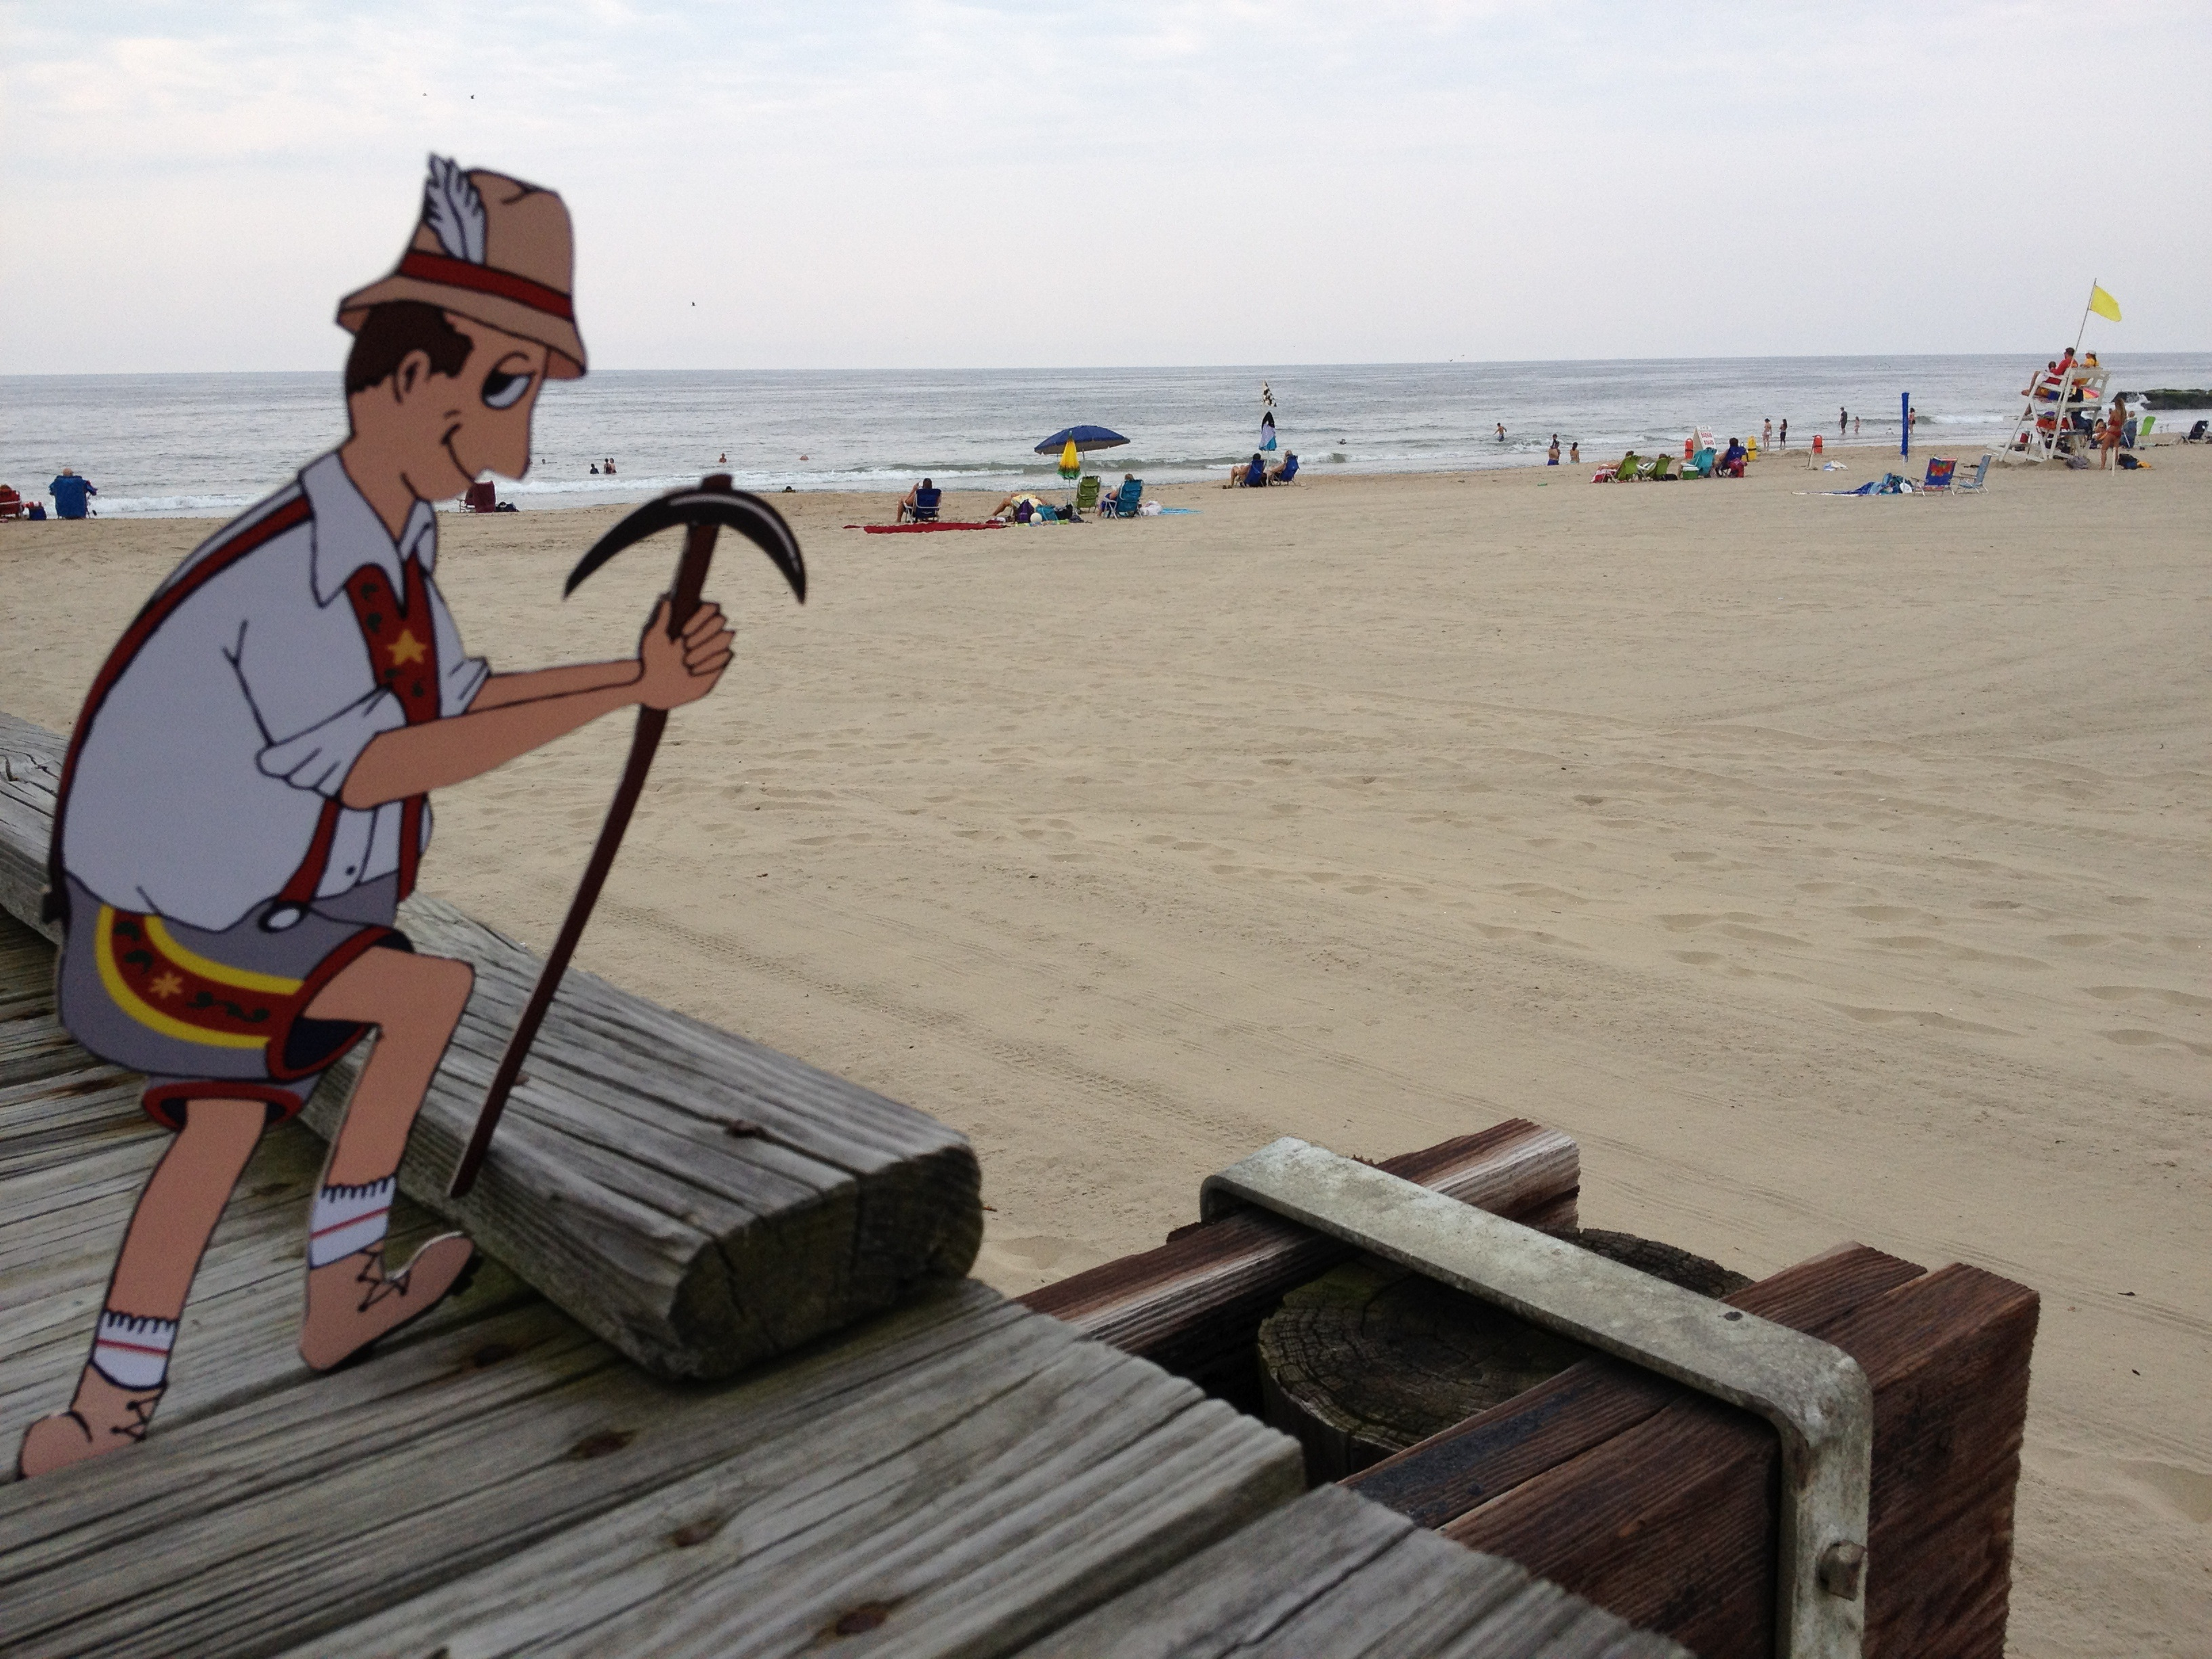 Yodely Guy at the Jersey Shore